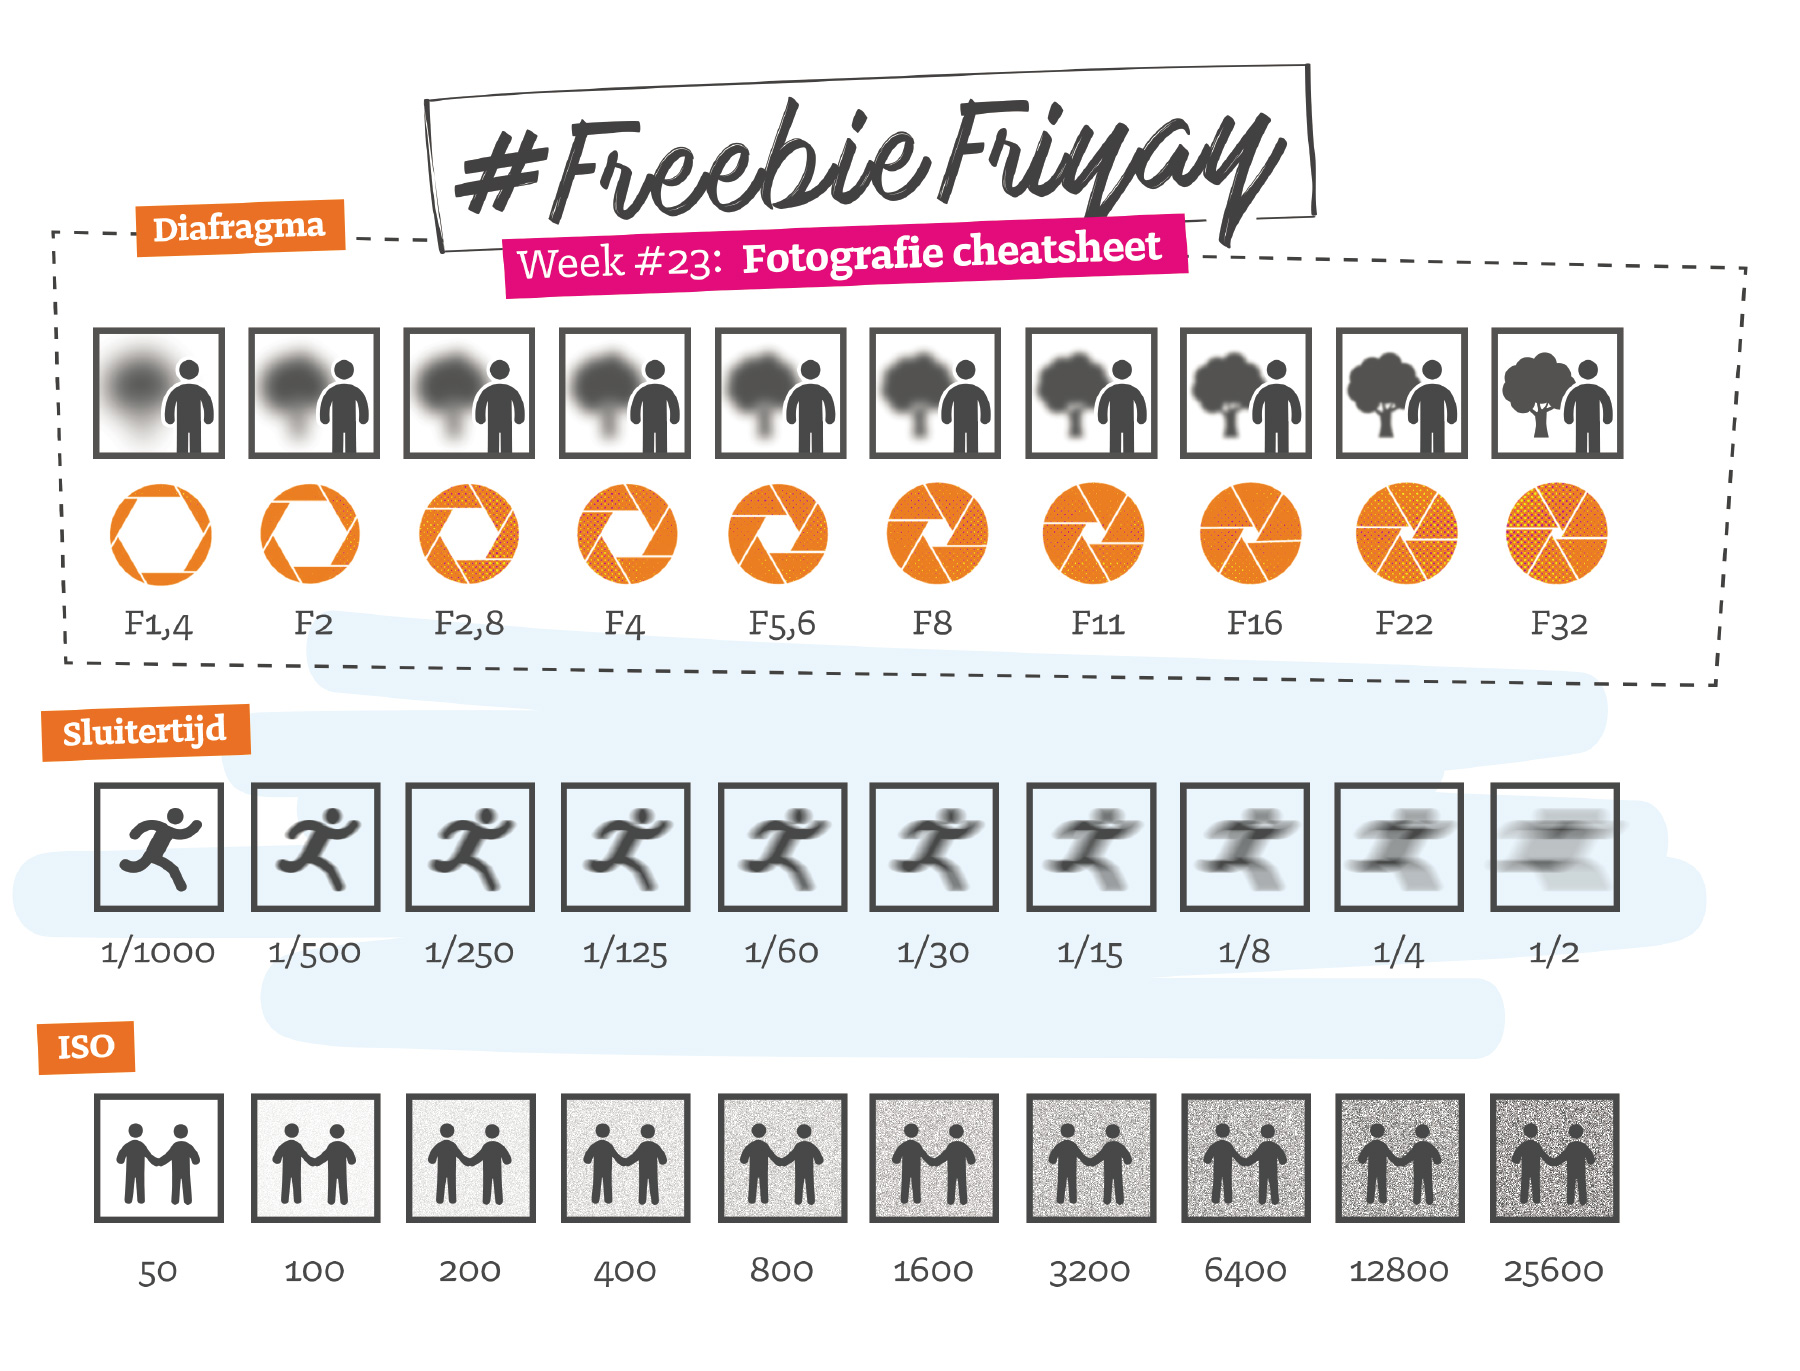 freebiefriyay-week-23 freebie-fotografie-cheatsheet